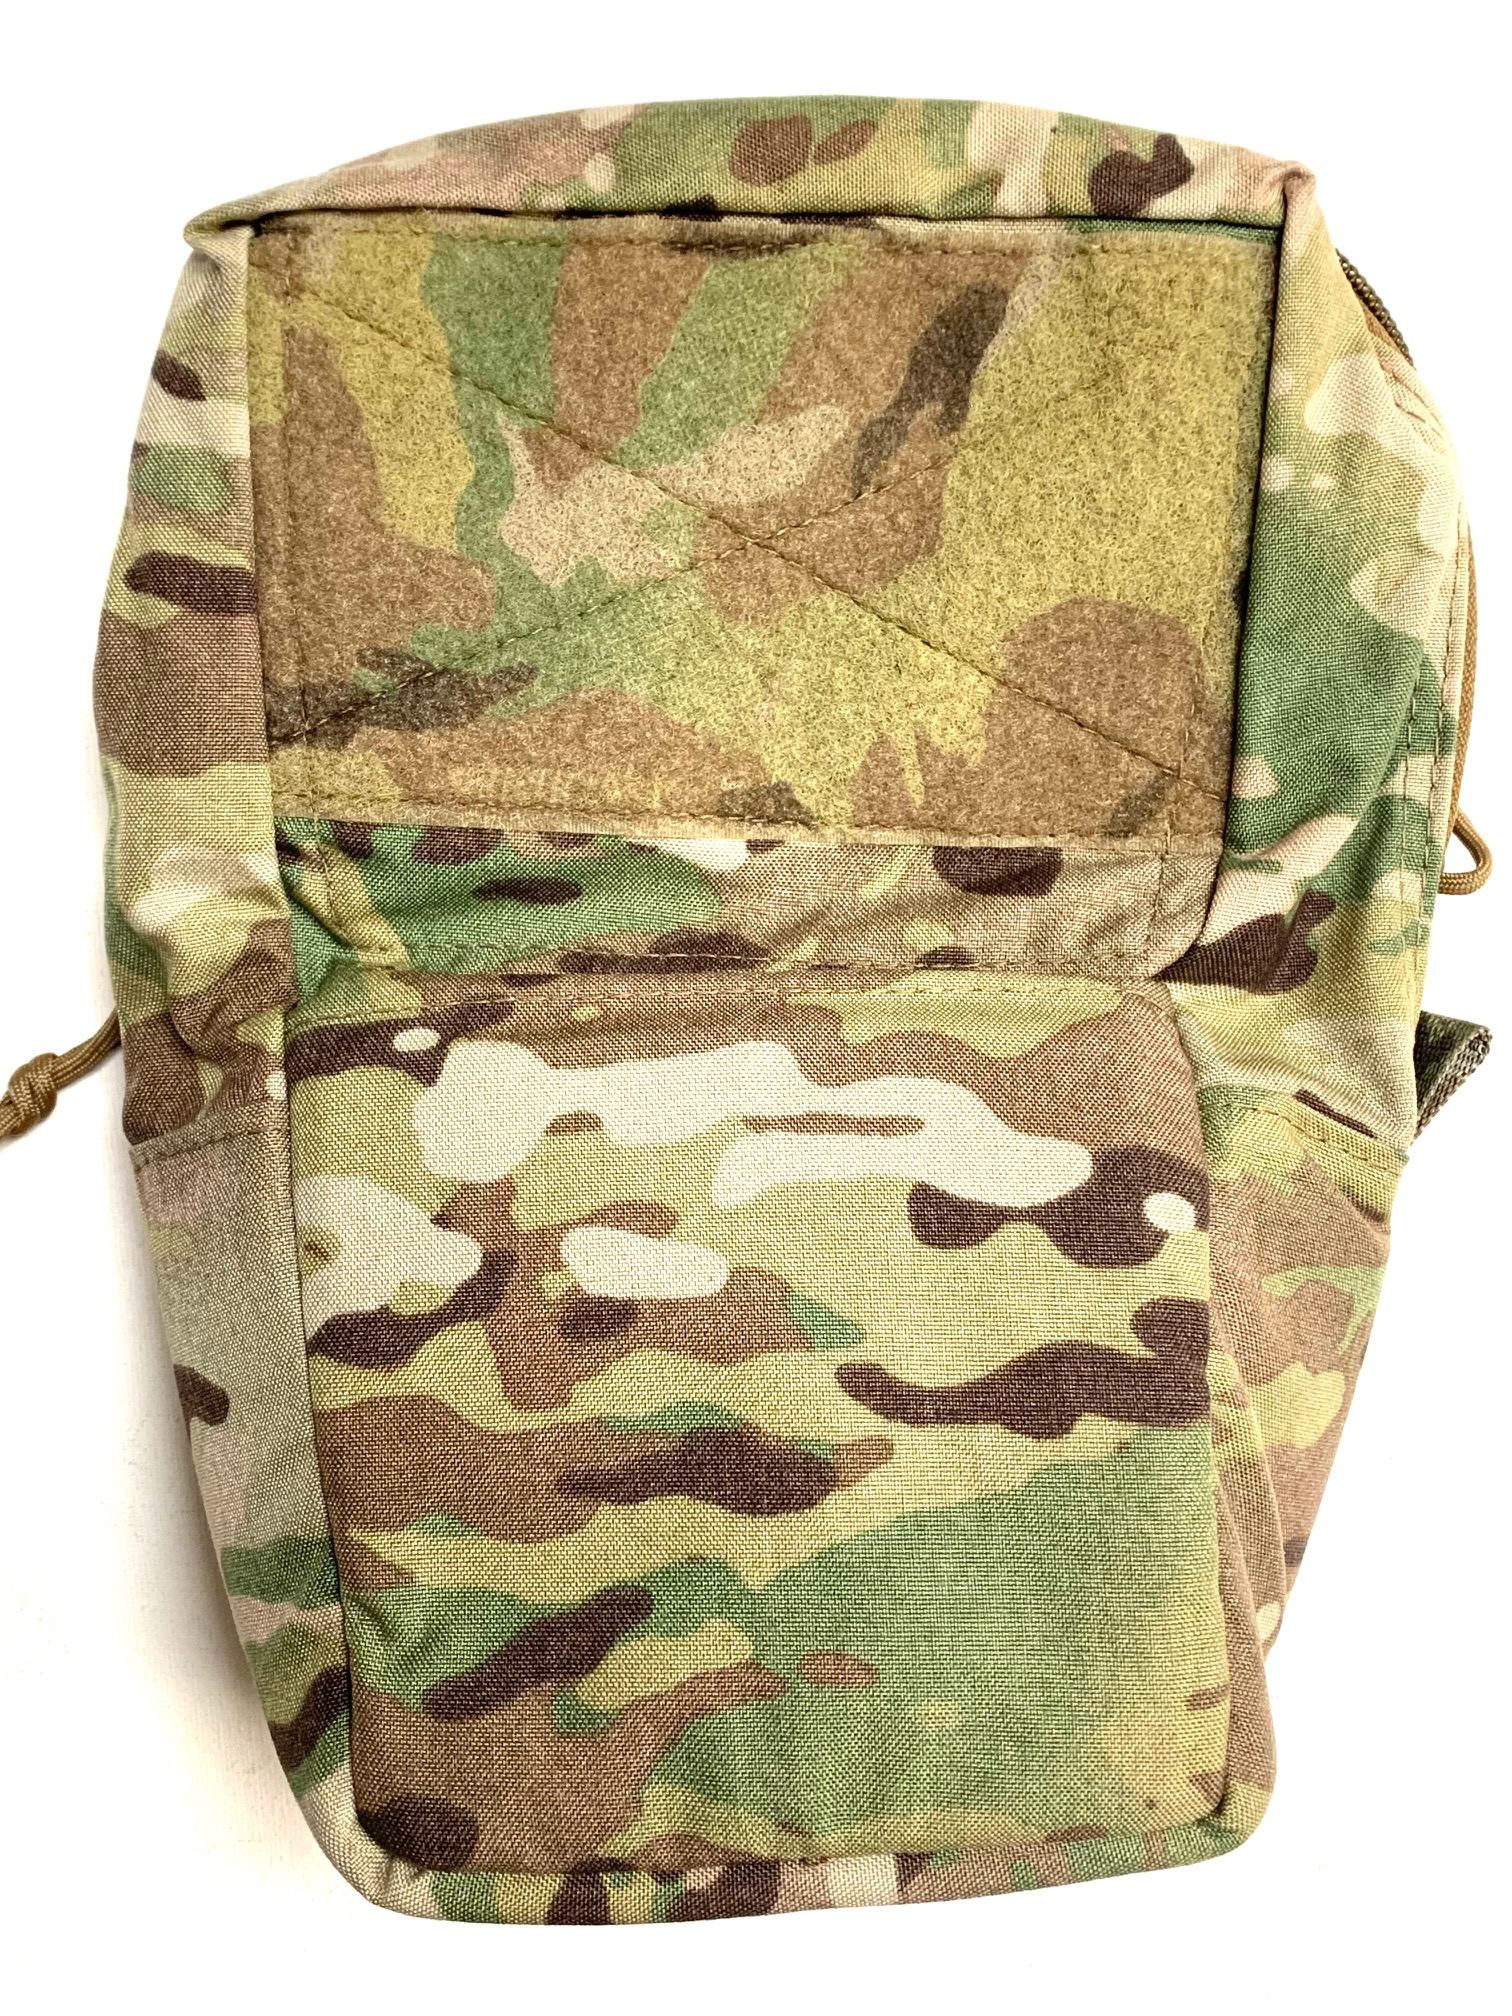 Night Vision Goggles Pouch